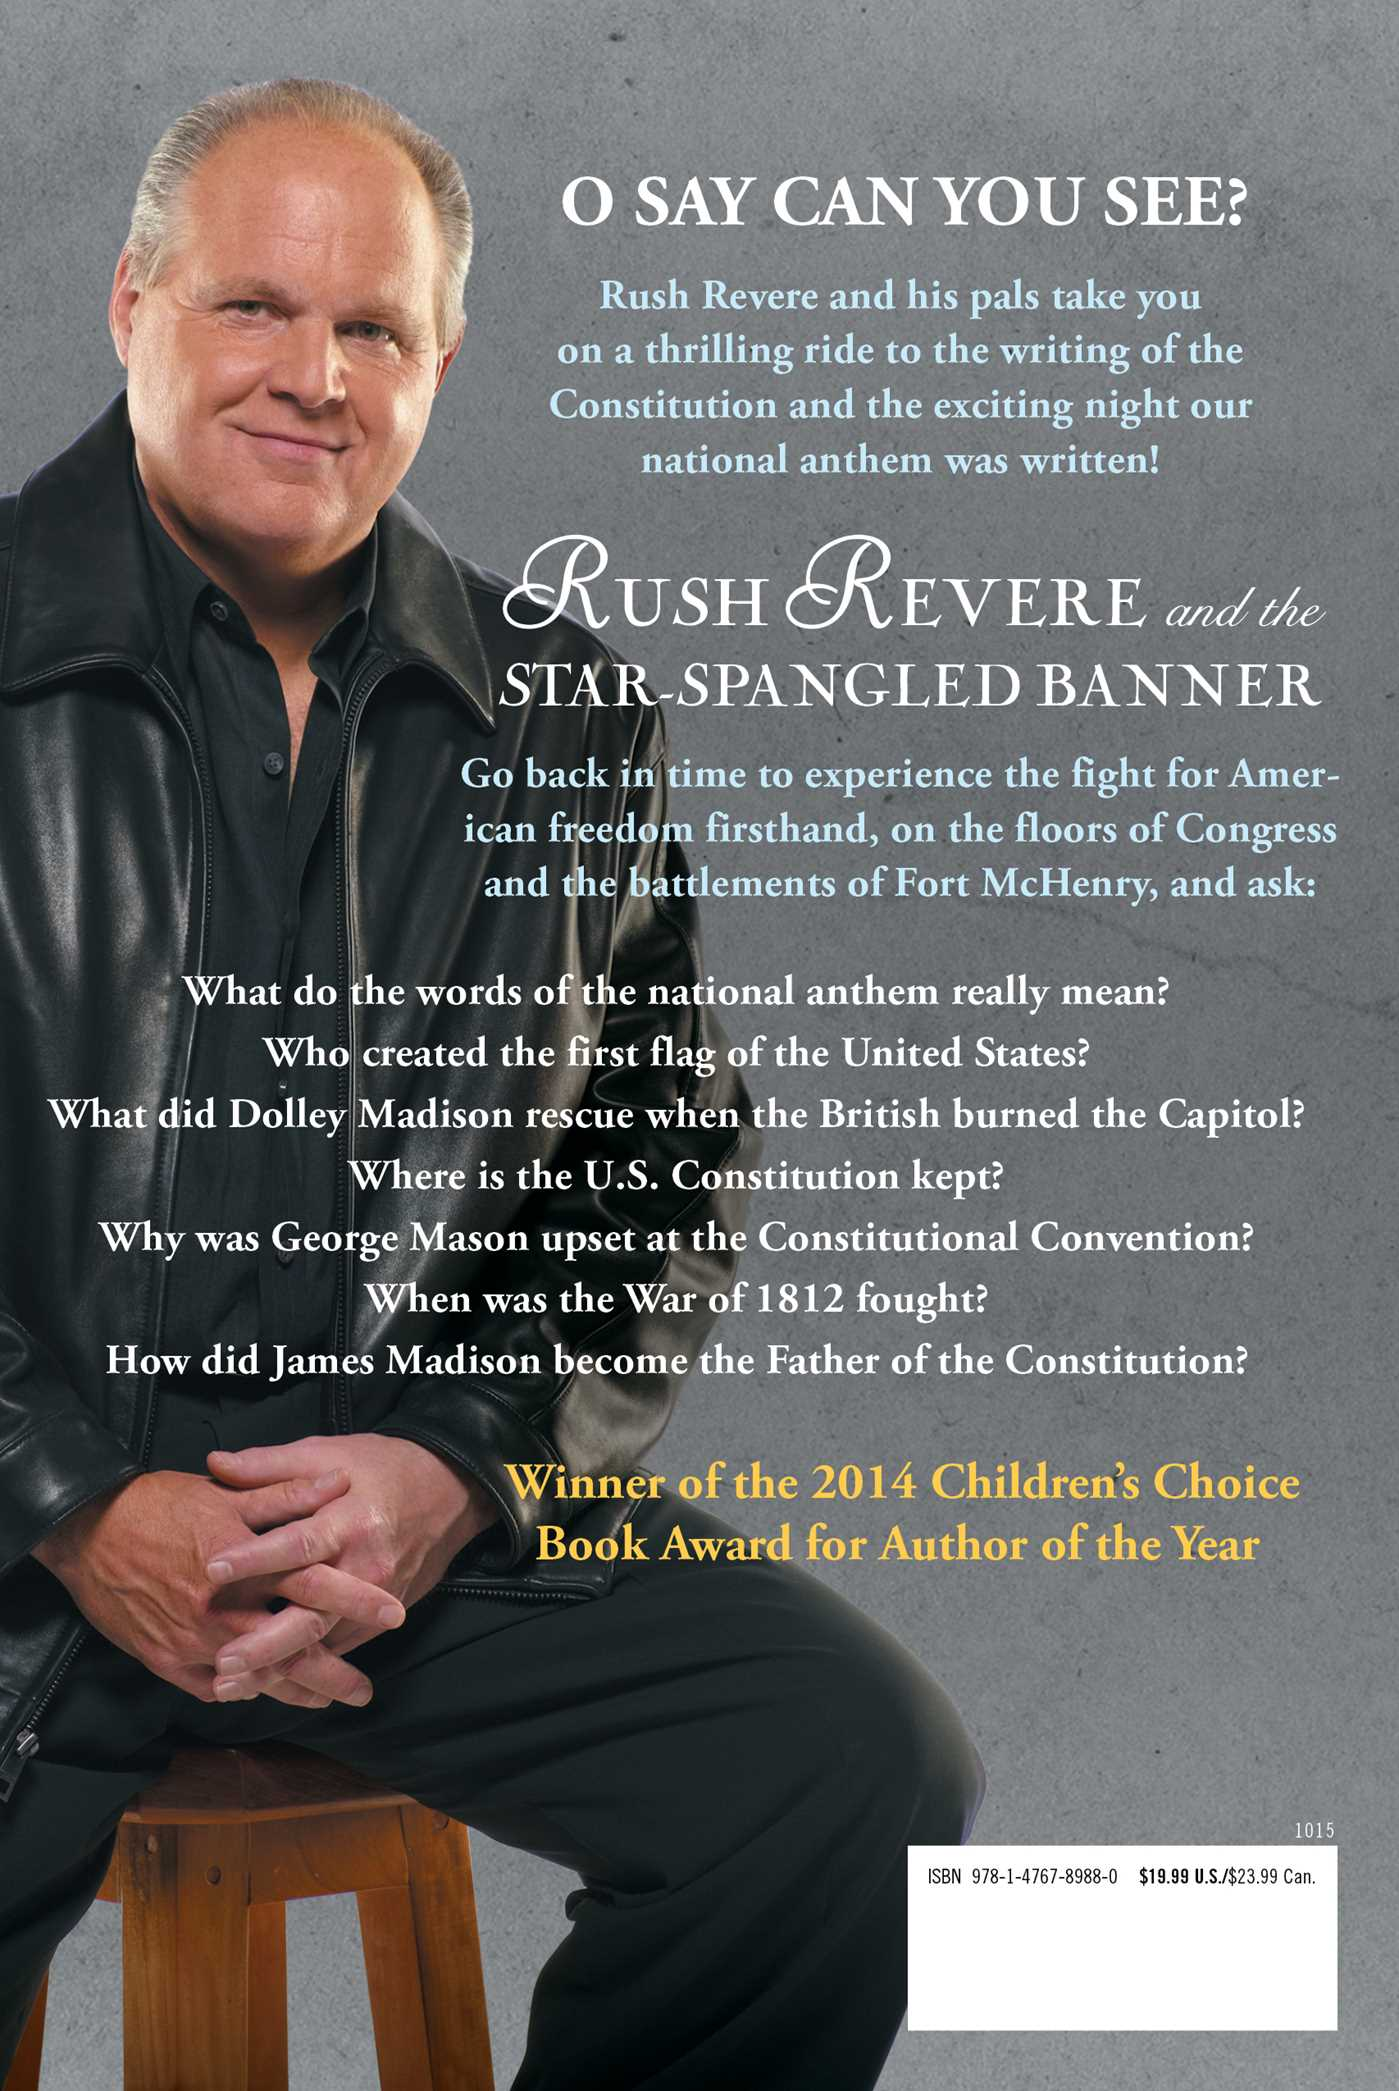 Rush revere and the star spangled banner 9781476789880 hr back